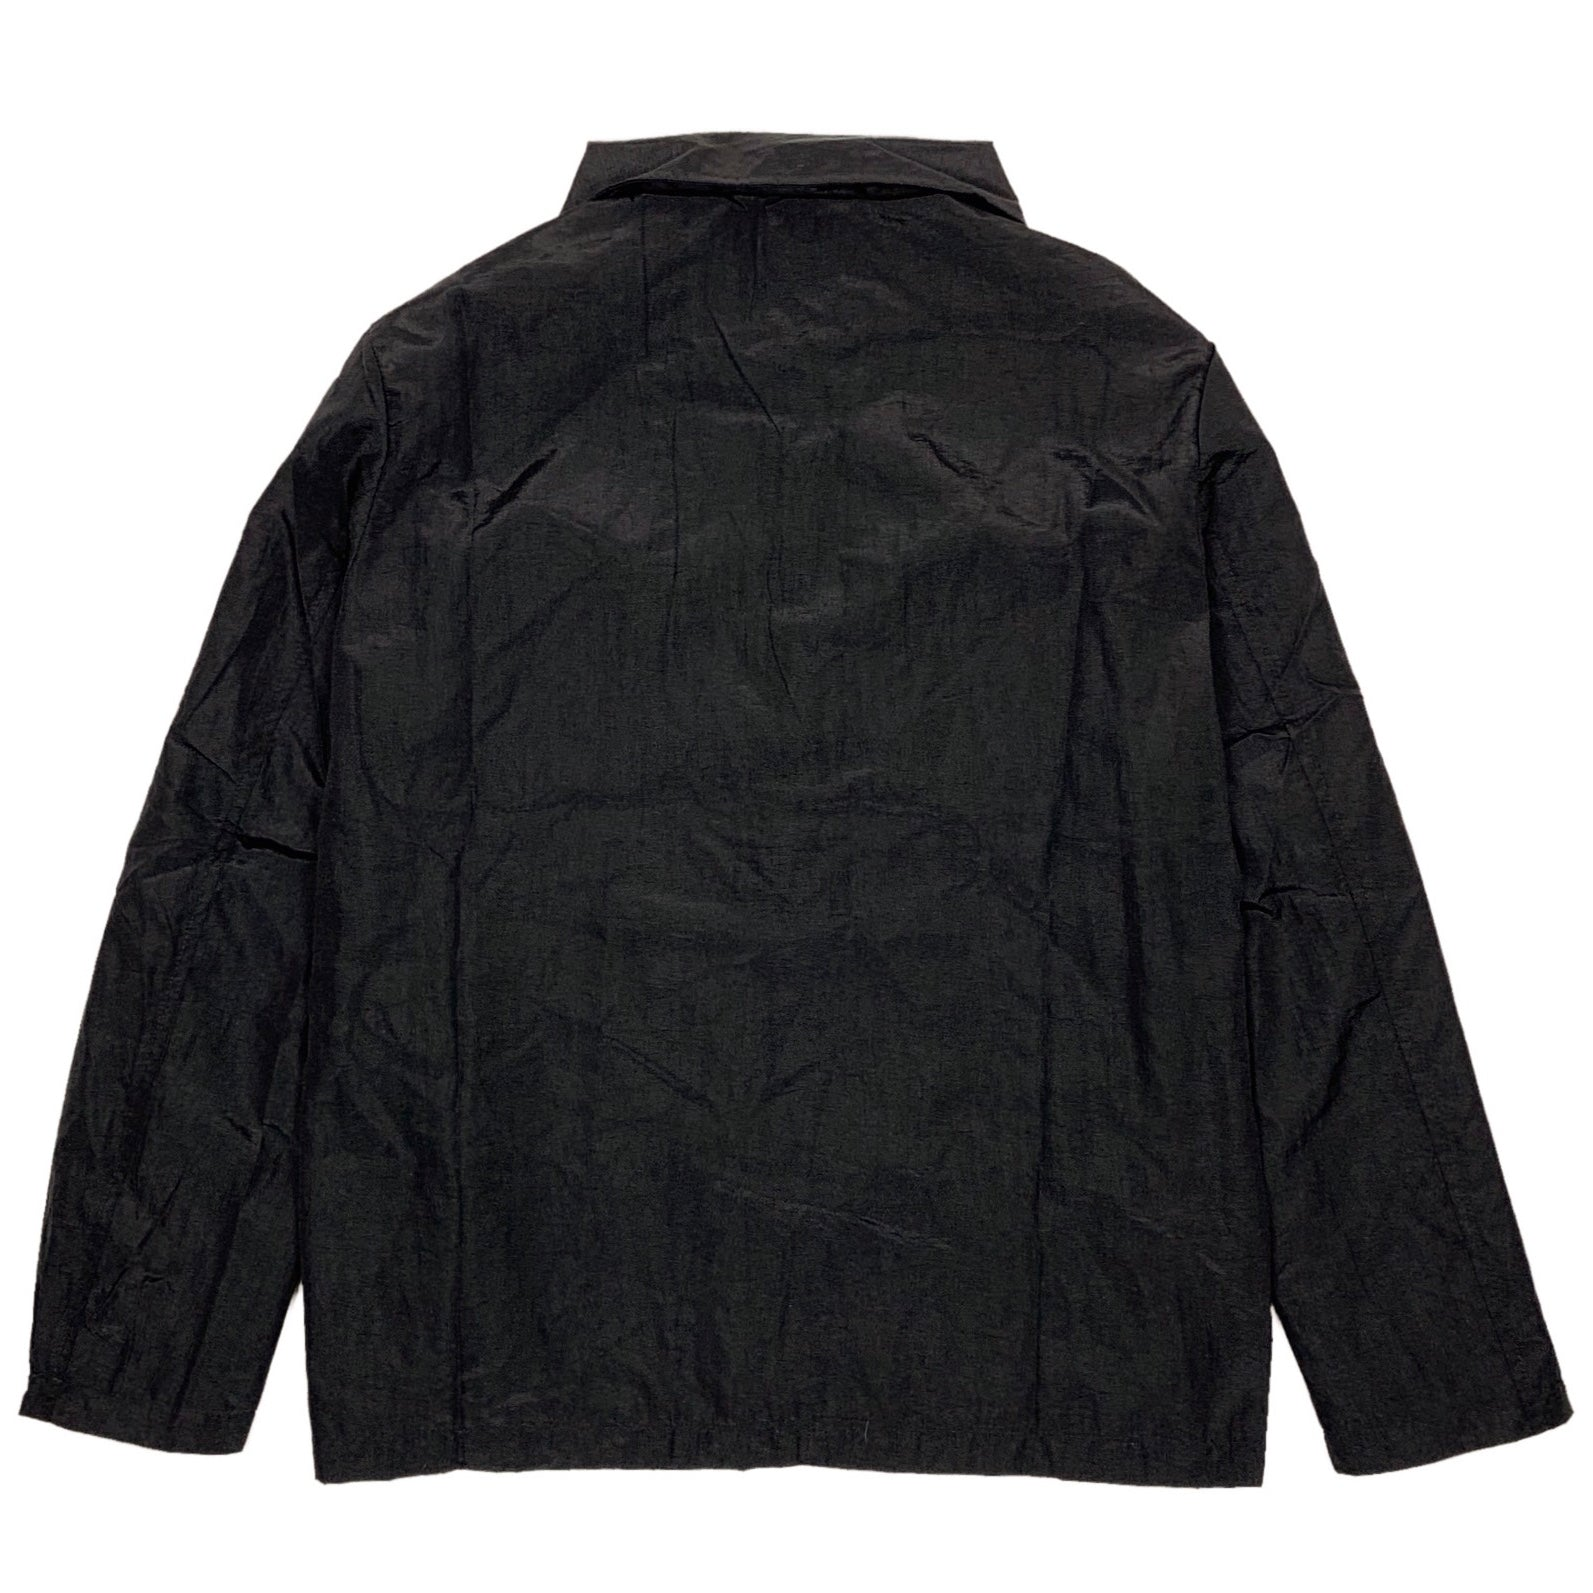 bled clothing nylon jacket overshirt black bledwear streetwear